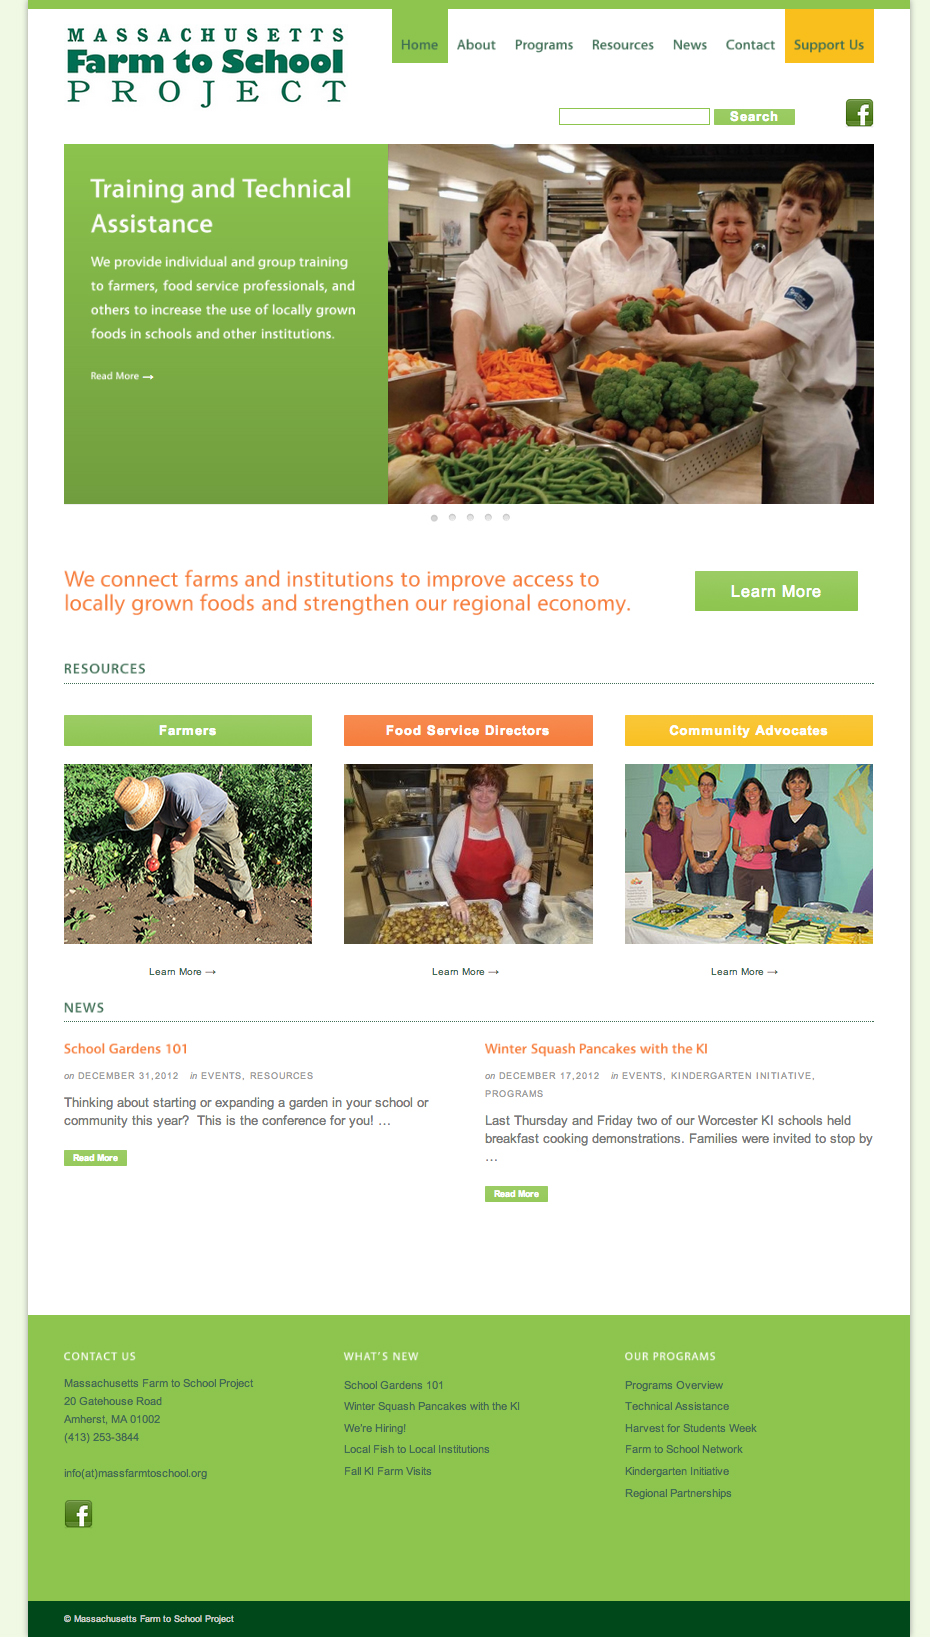 Massachusetts Farm to School Program